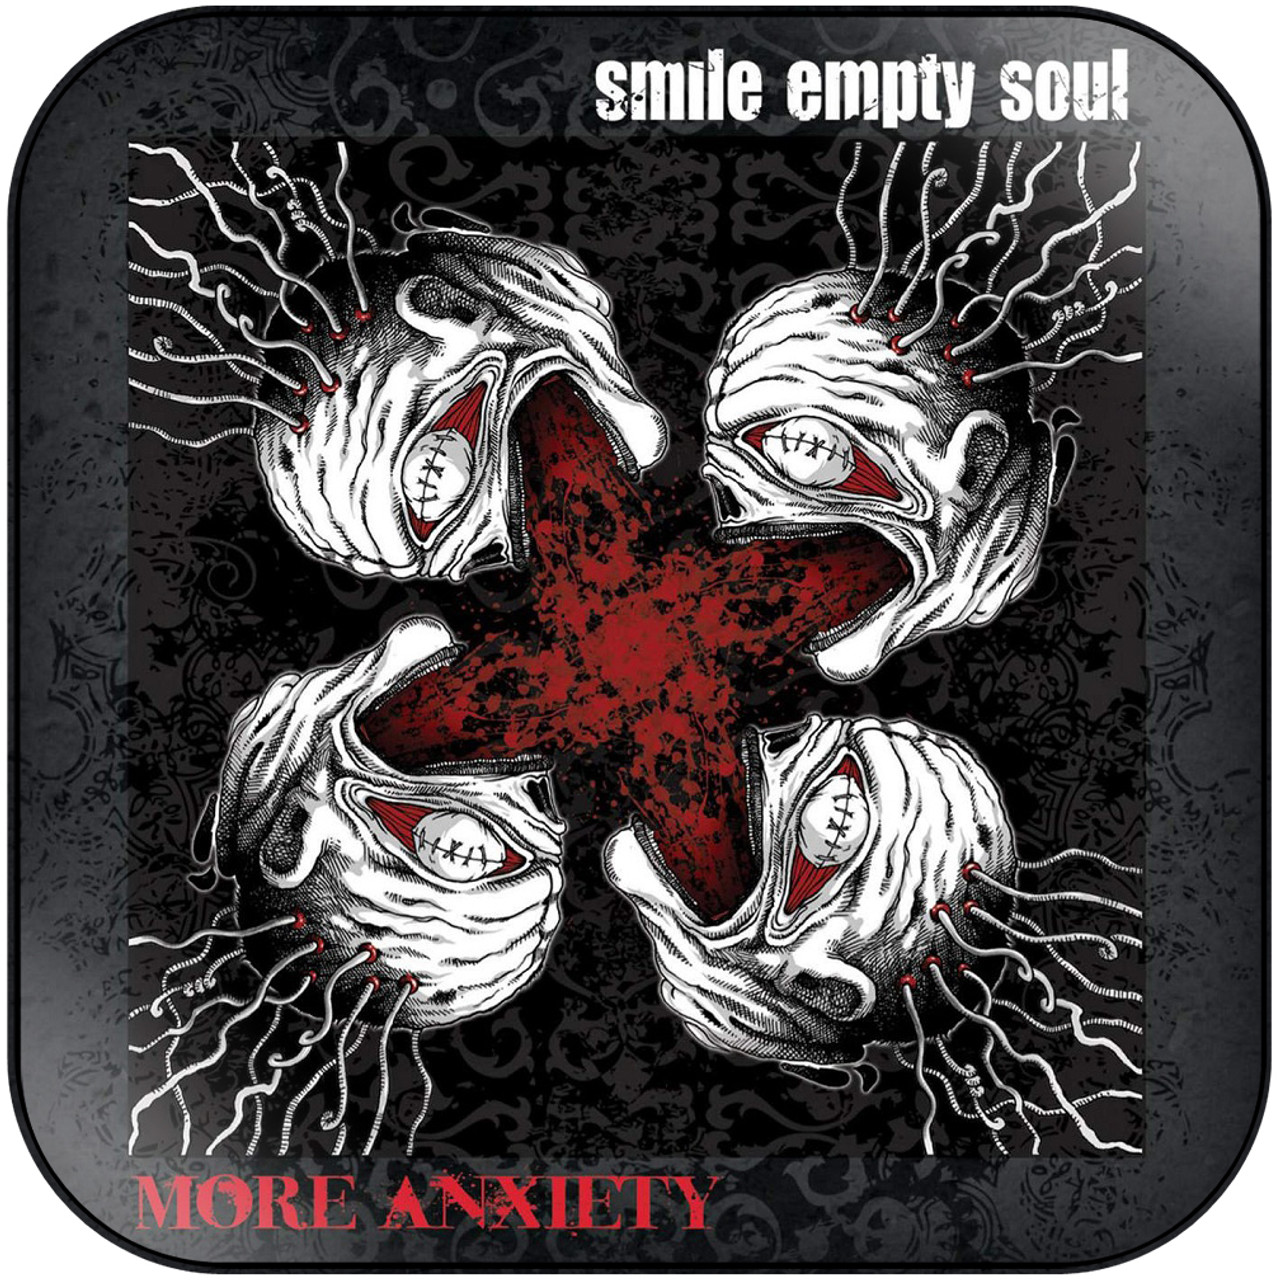 Smile Empty Soul - More Anxiety Album Cover Sticker